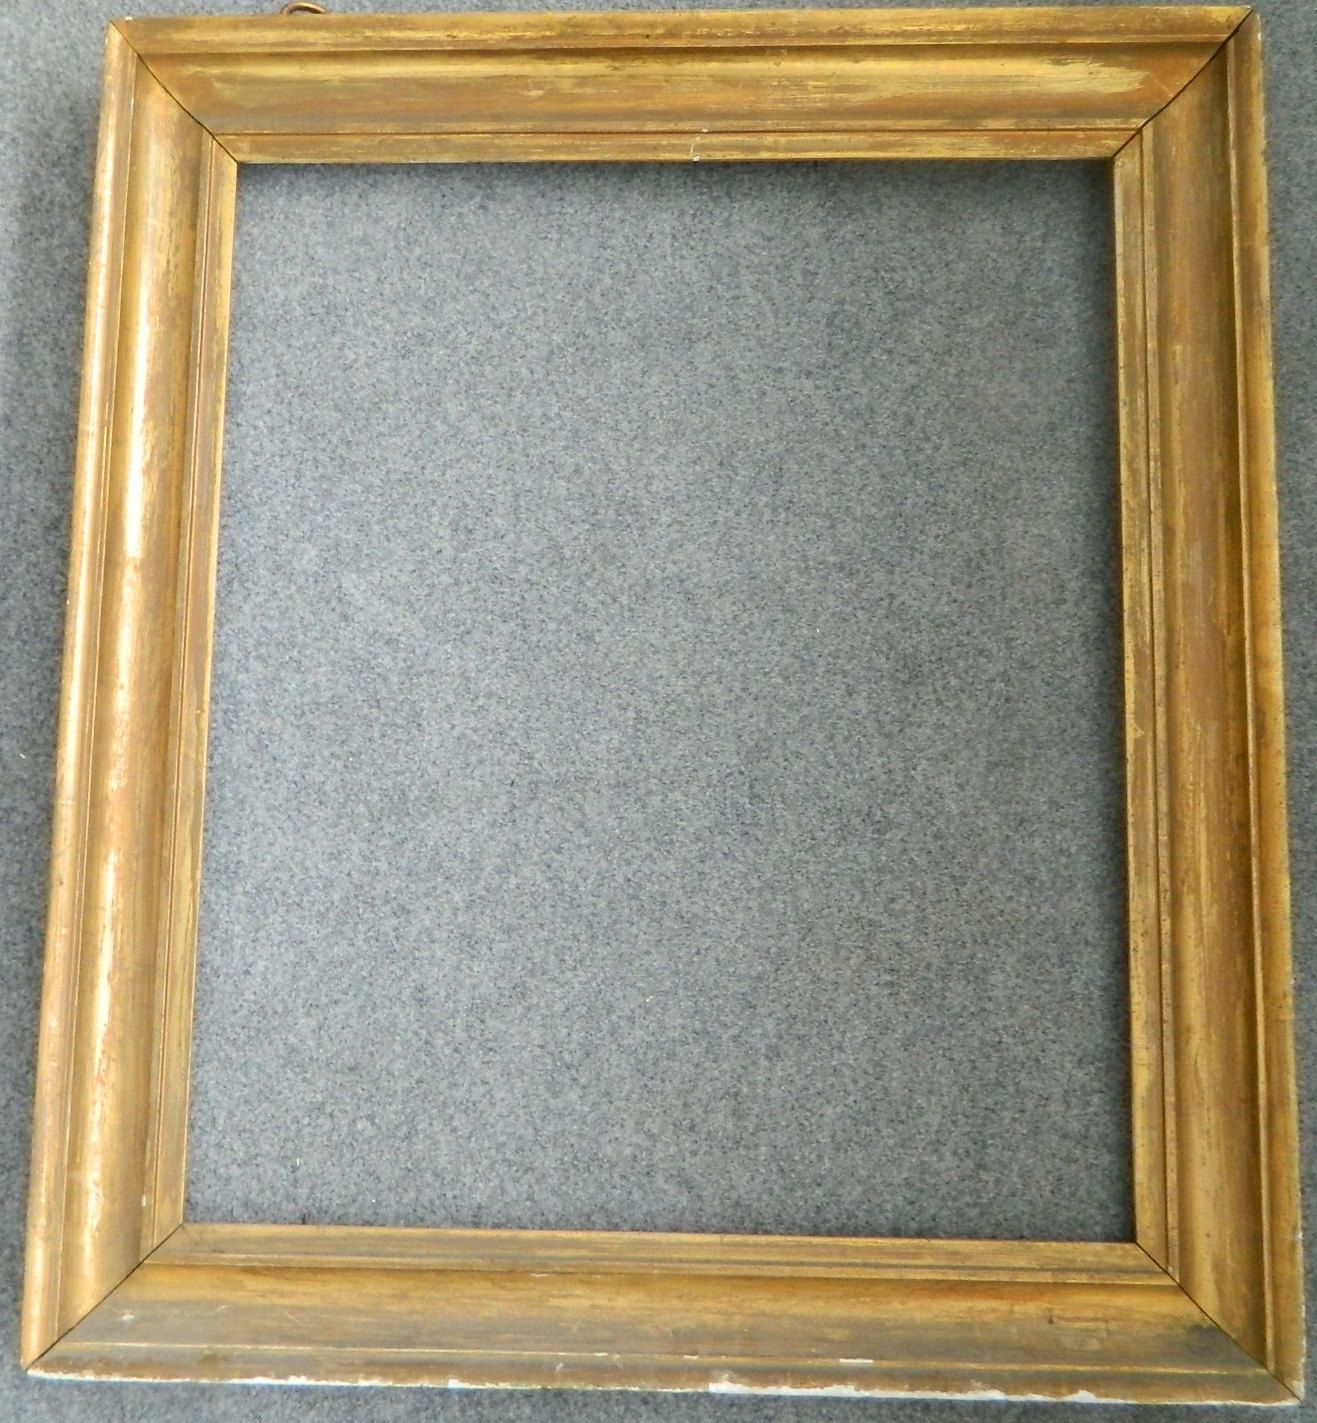 Early Gold Frame W 34 1 2 By 30 Inches Front And 29 24 Inch Back Olartiesoldthings On Etsy